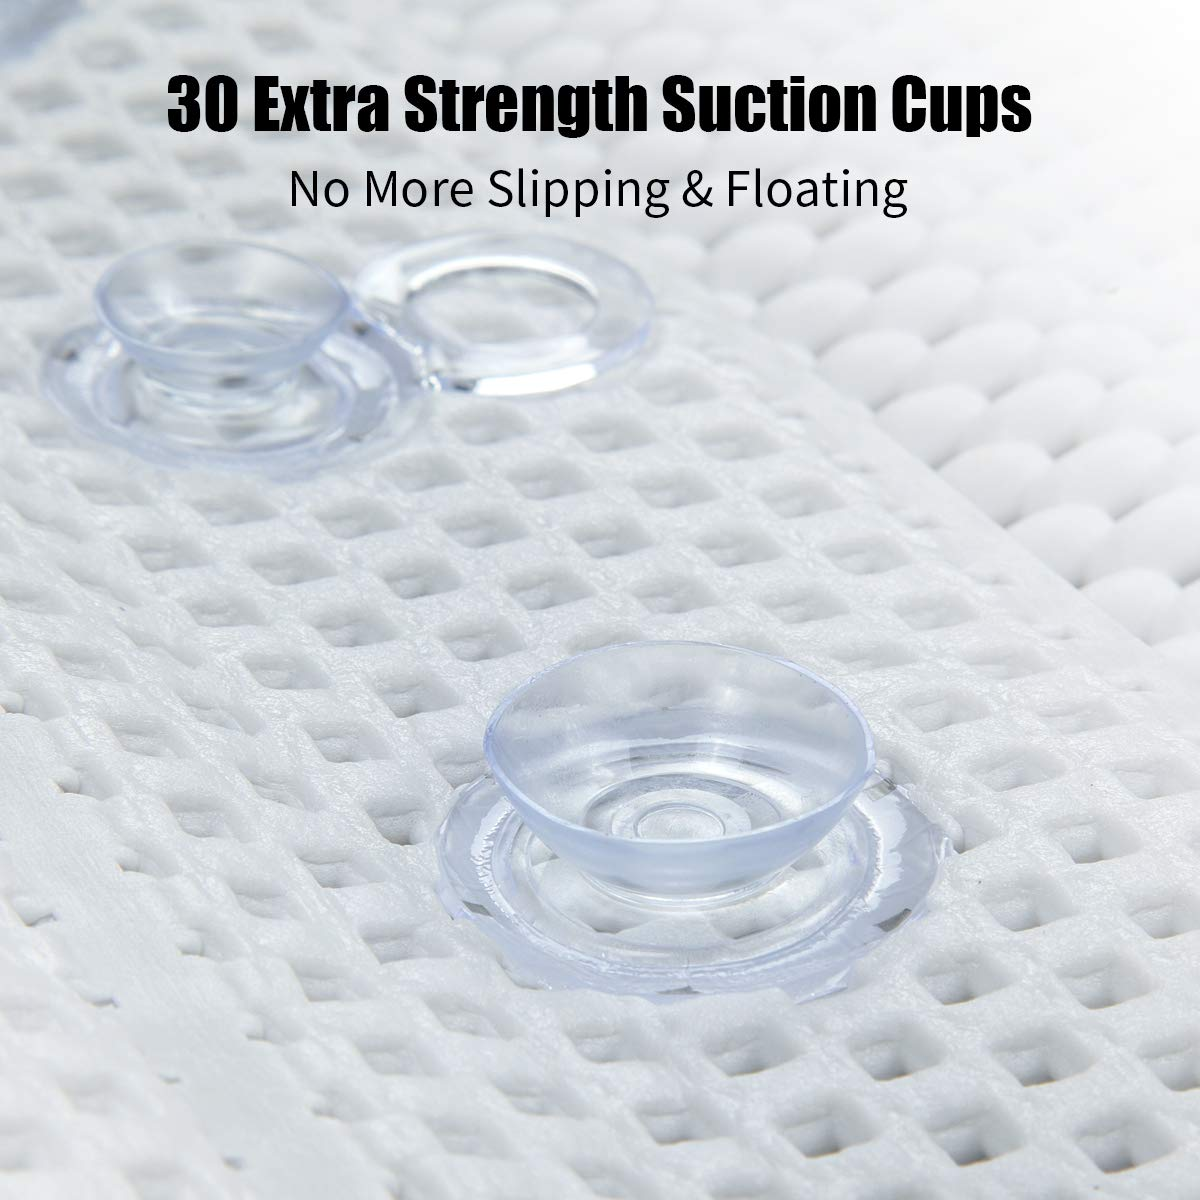 Bathtub Full Body Comfort Spa Pillow and Spa Cushion Mat Bath with Suction Cups